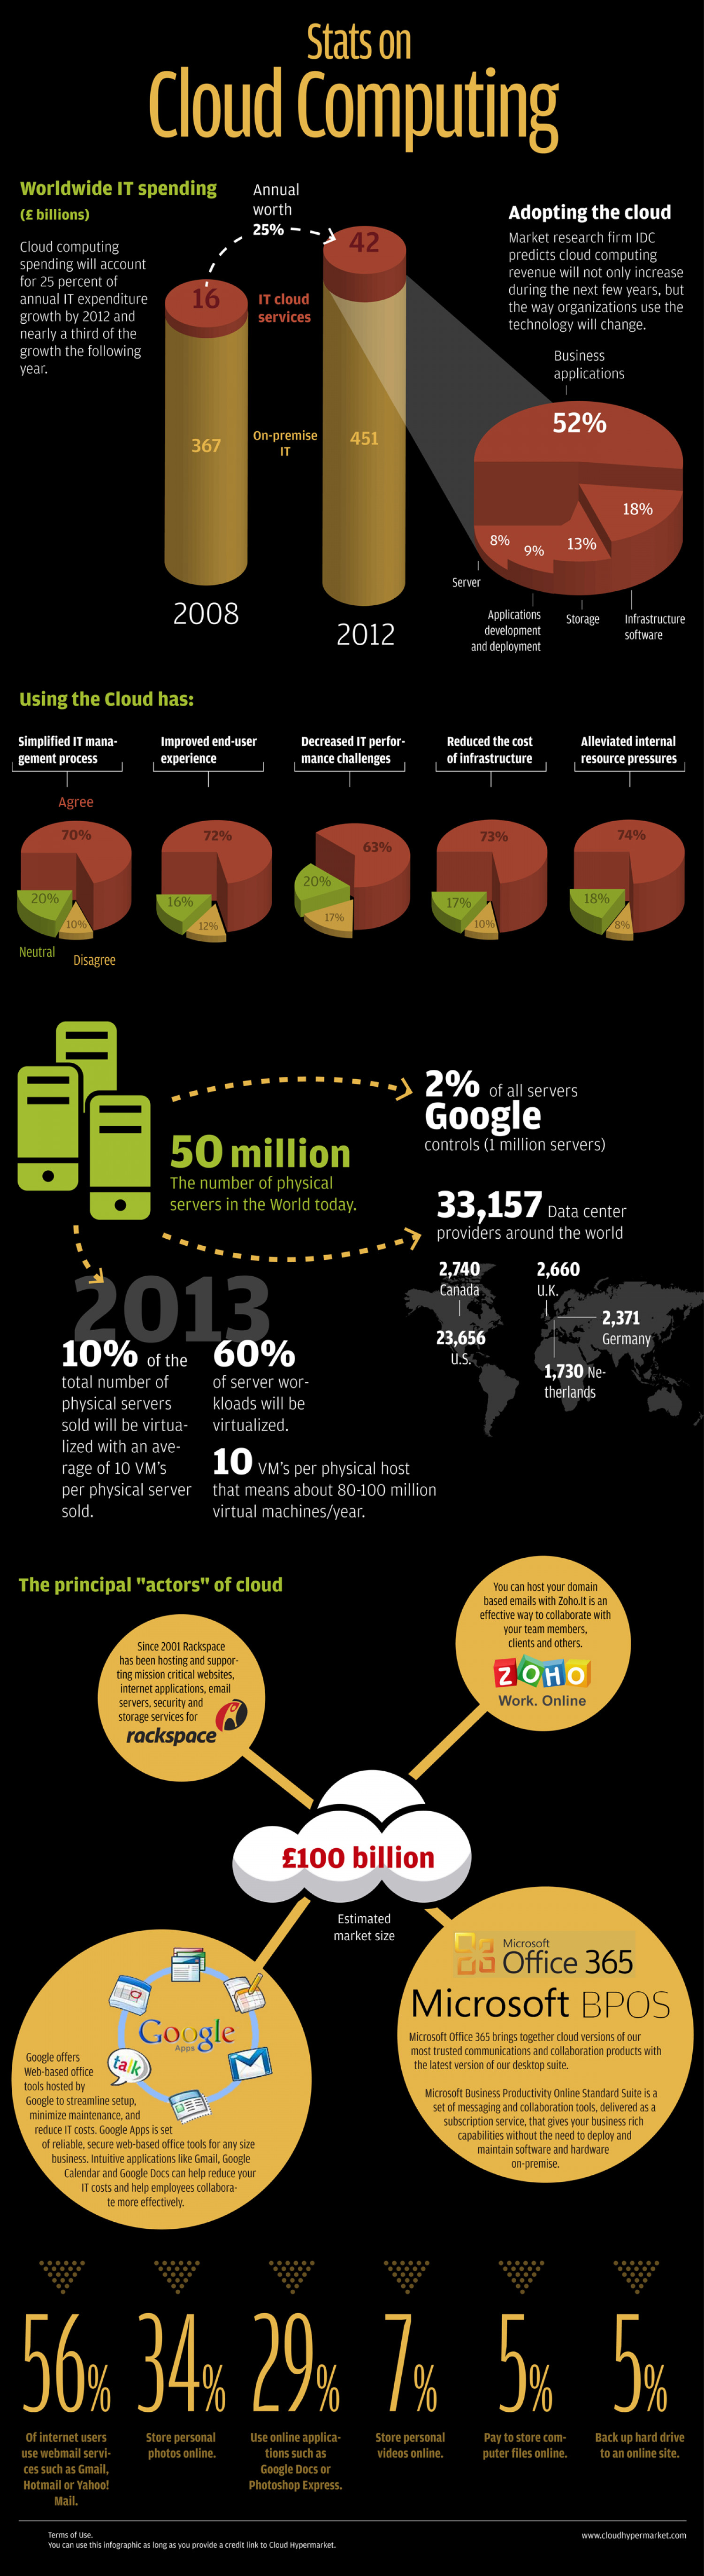 Cloud Computing 101 Infographic